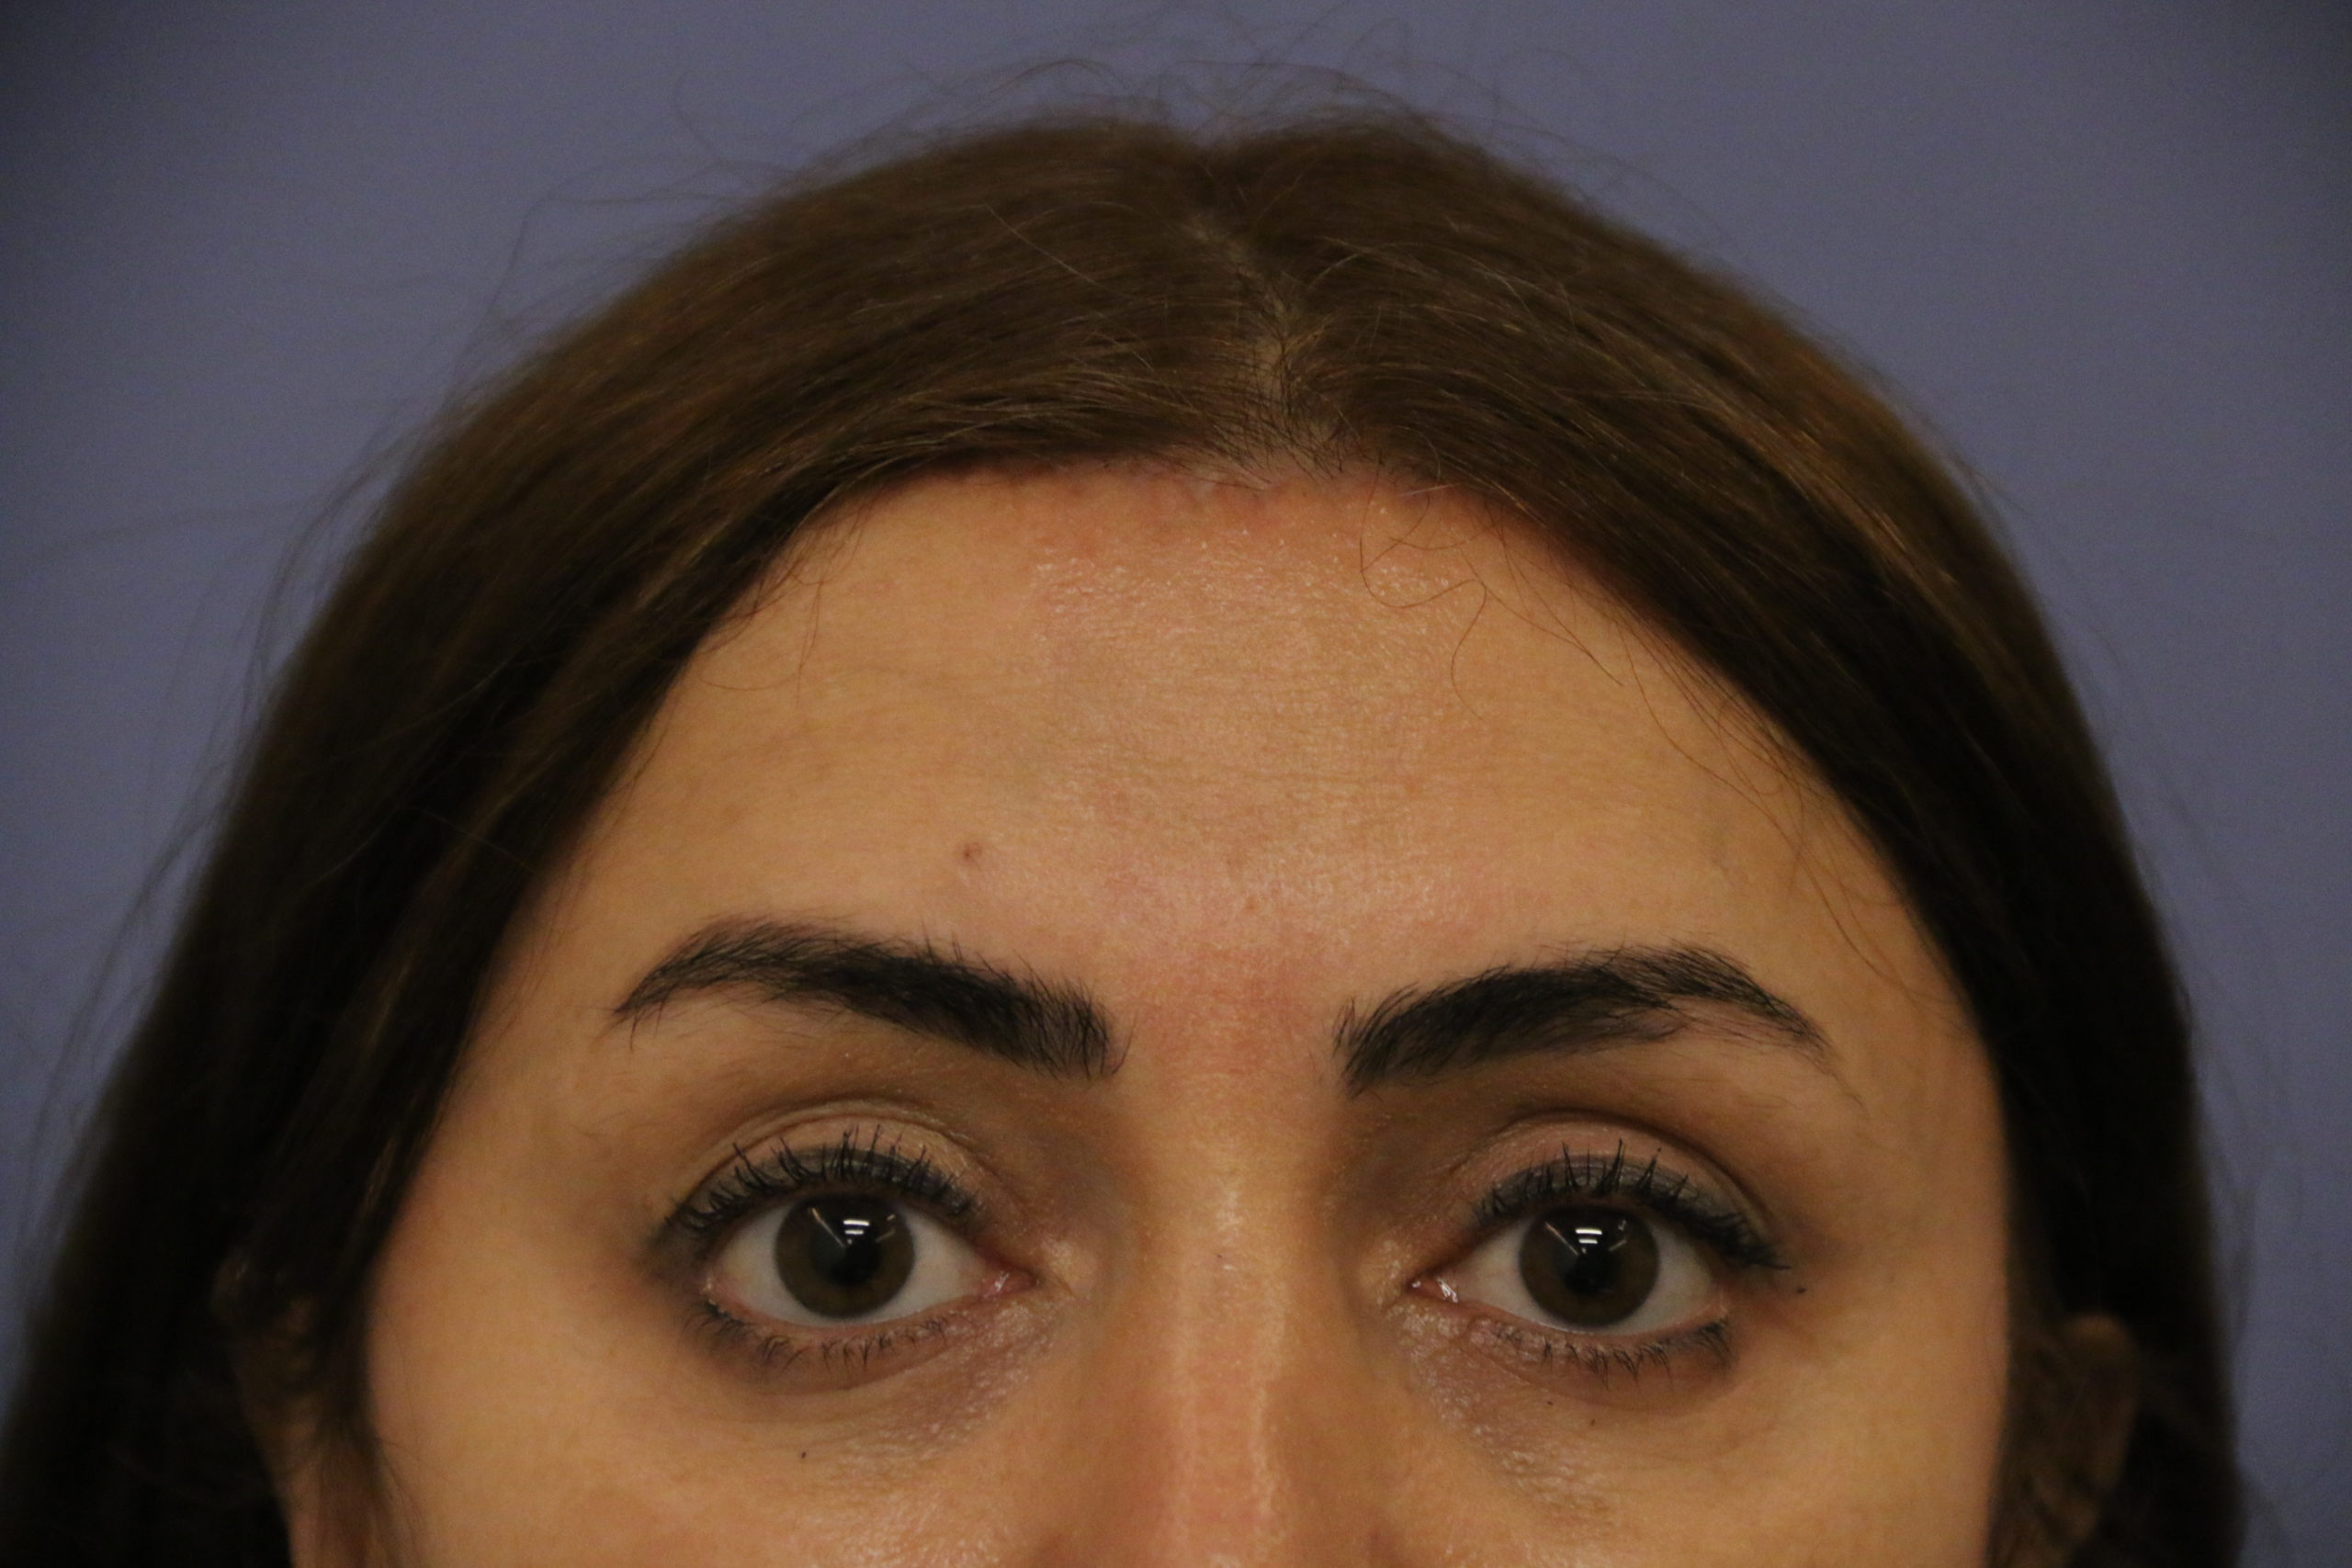 Forehead reduction 2 months post op